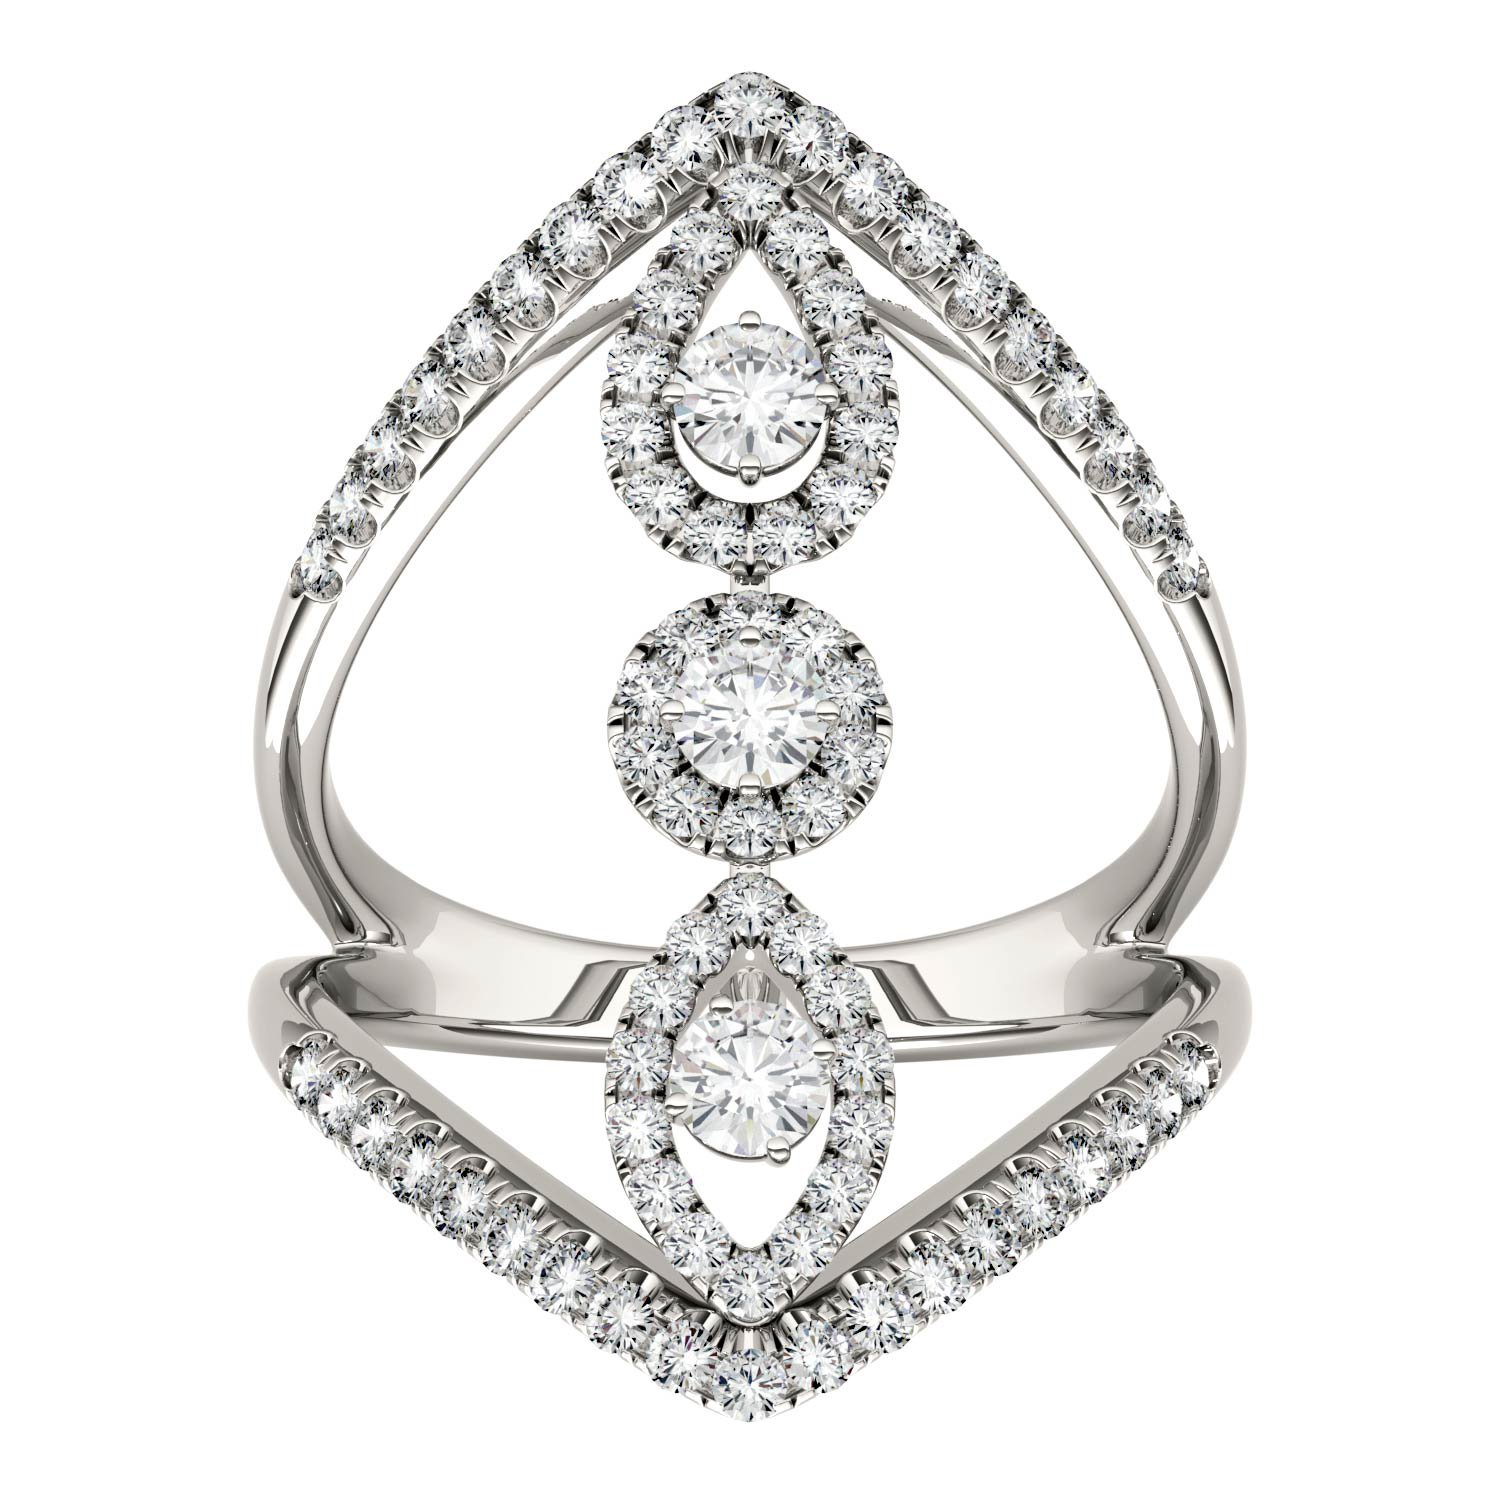 Forever Brilliant Round 3.0mm Moissanite Geometric Ring-size 5, 1.01cttw DEW By Charles & Colvard